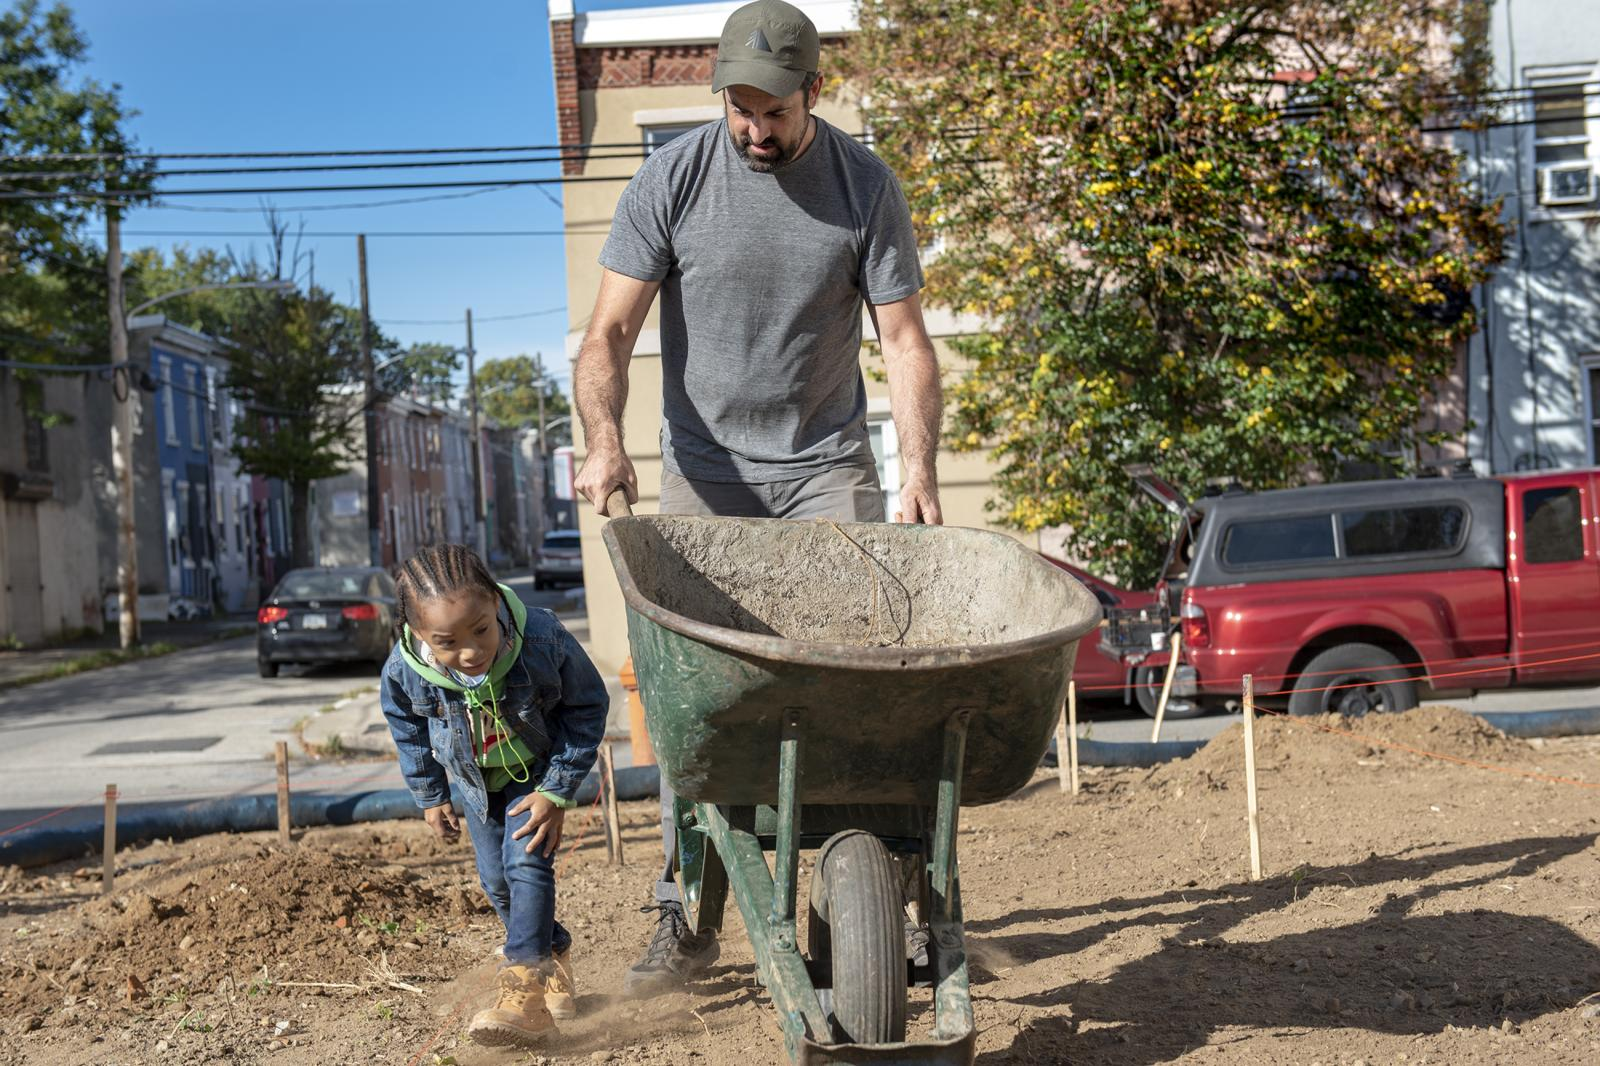 Christopher Parnell Jr., 6, left, and Teddy Pickering, 38, of Brewerytown Philadelphia, Senior studying Landscape Architecture at Jefferson University, right, work on building up a park on N 38th St., and Melon St. through the program Park in a Truck on Saturday, Oct. 12, 2019.